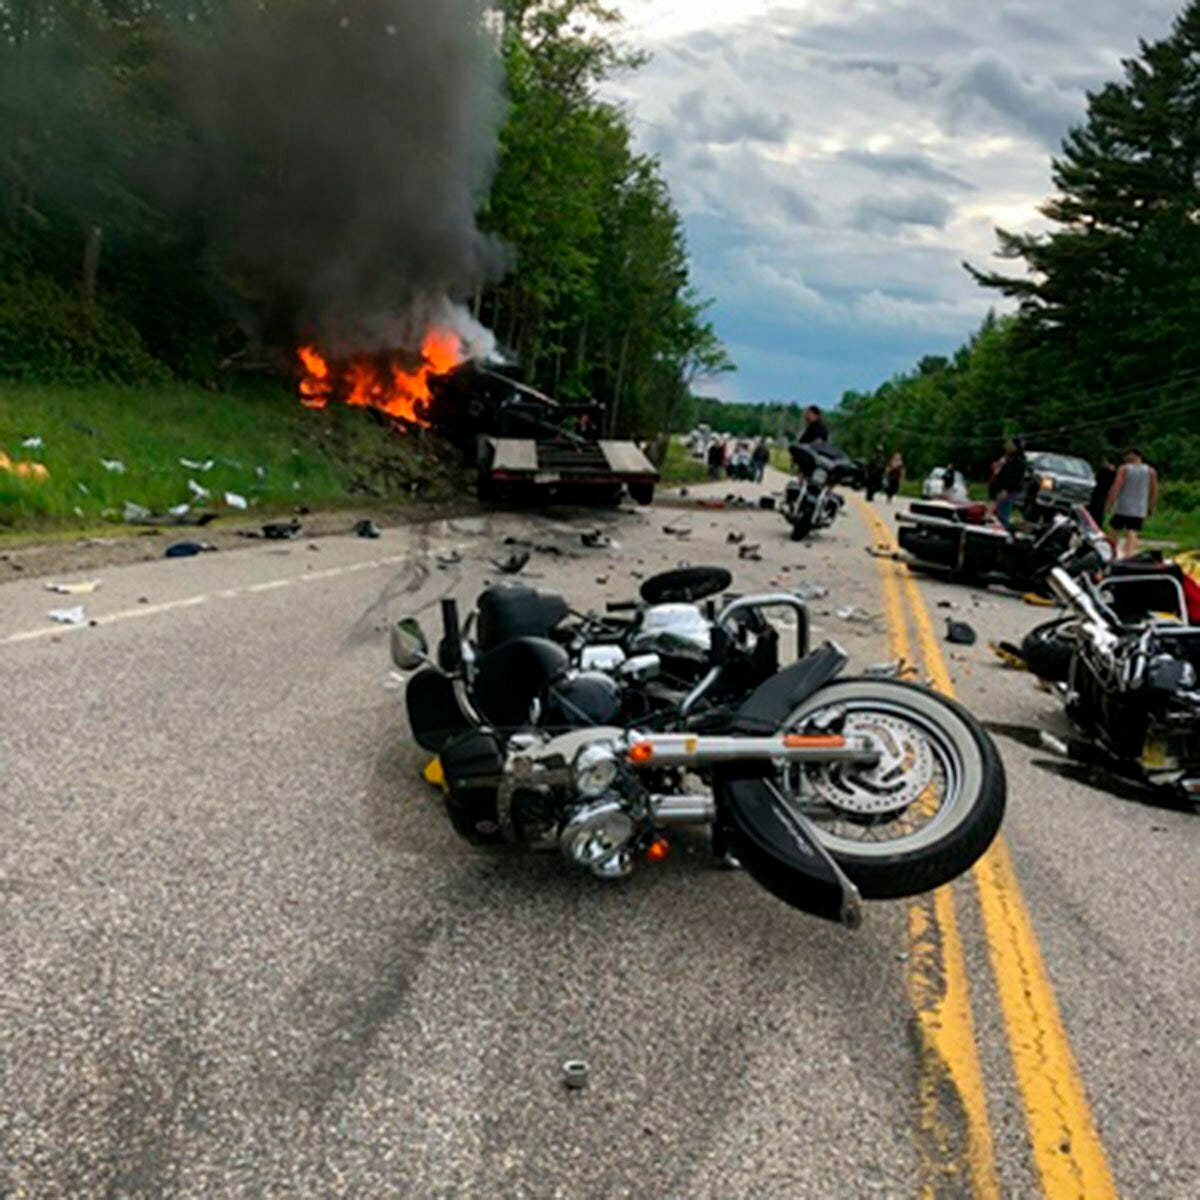 Motorcycle crash: Truck driver charged in crash that killed 7 bikers